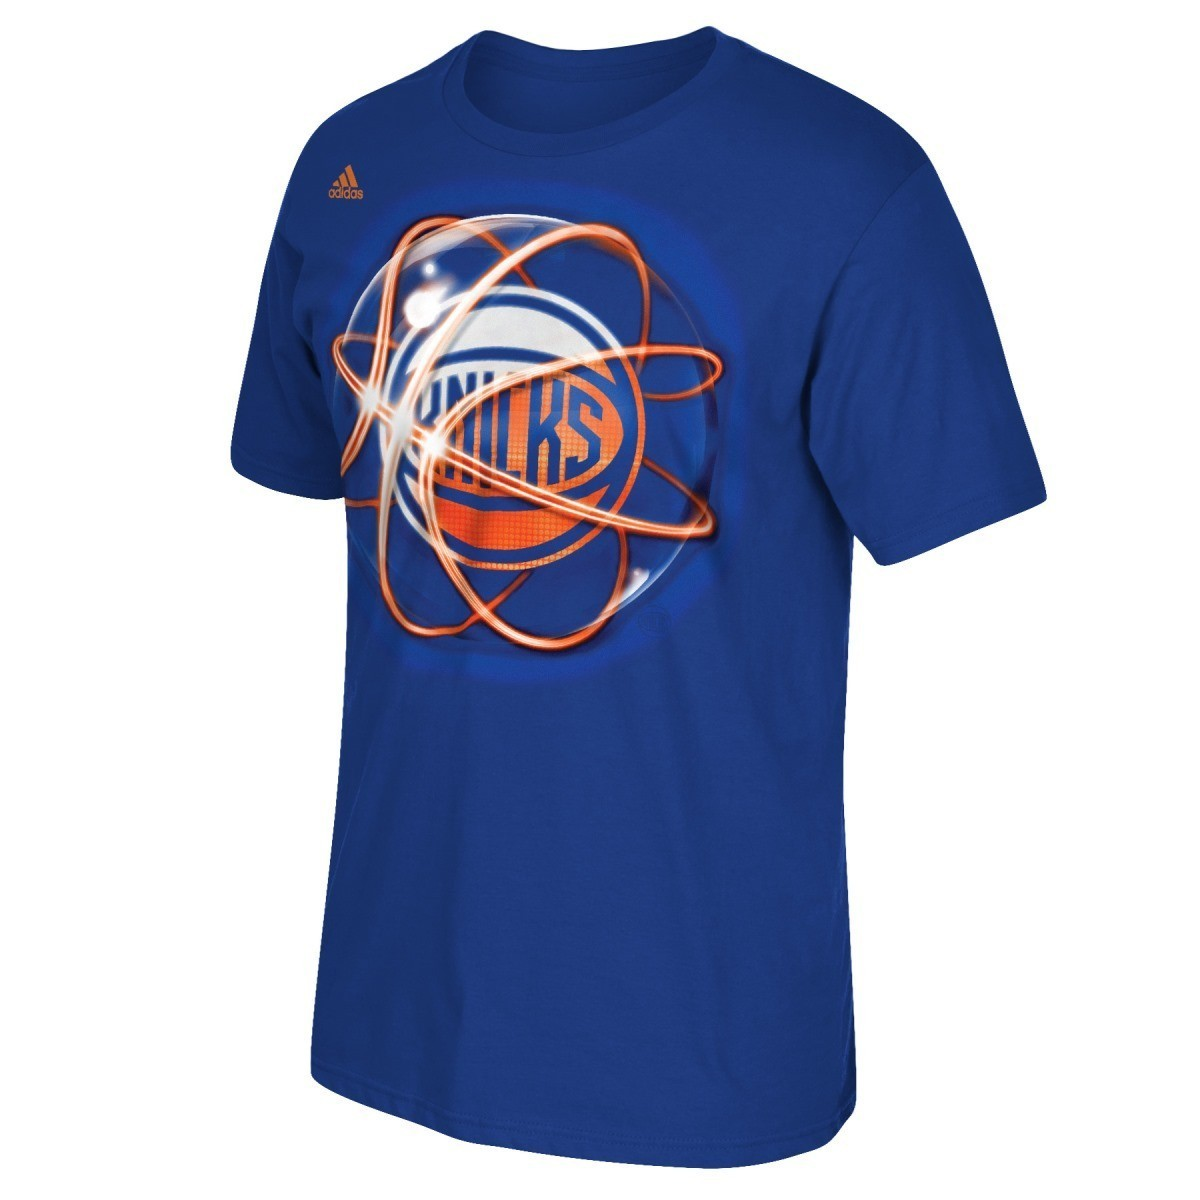 "New York Knicks Adidas NBA ""Horizons"" Premium Print S/S Men's T-Shirt"